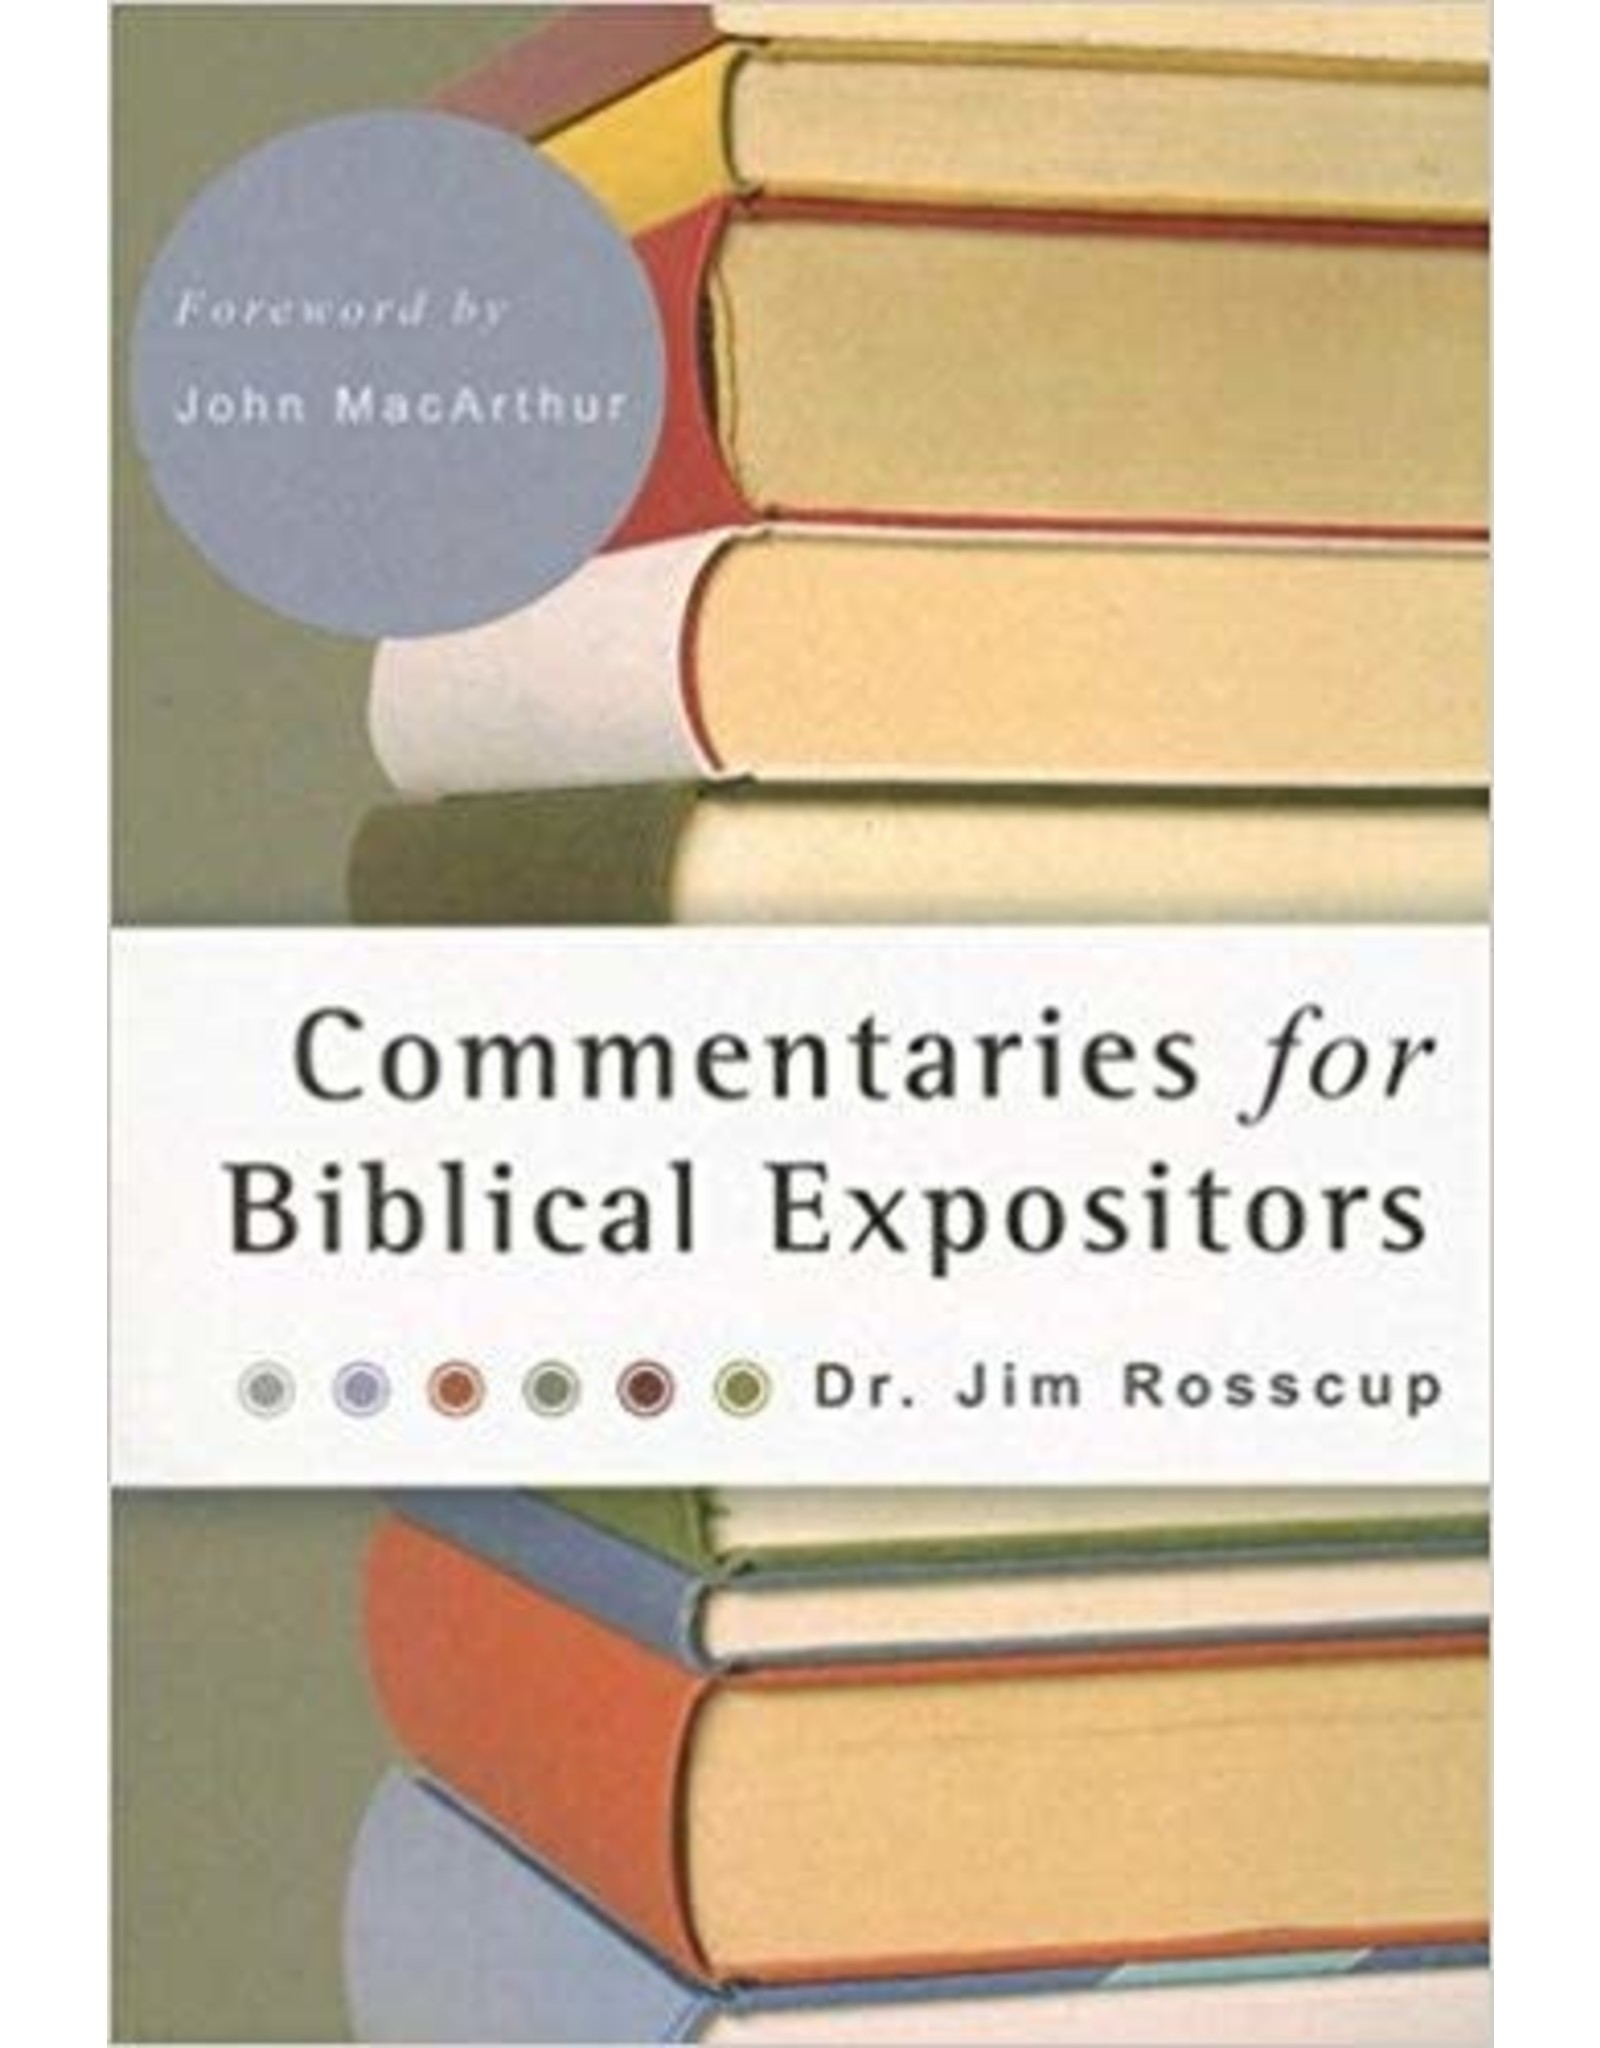 Rosscup Commentaries for Biblical Expositors